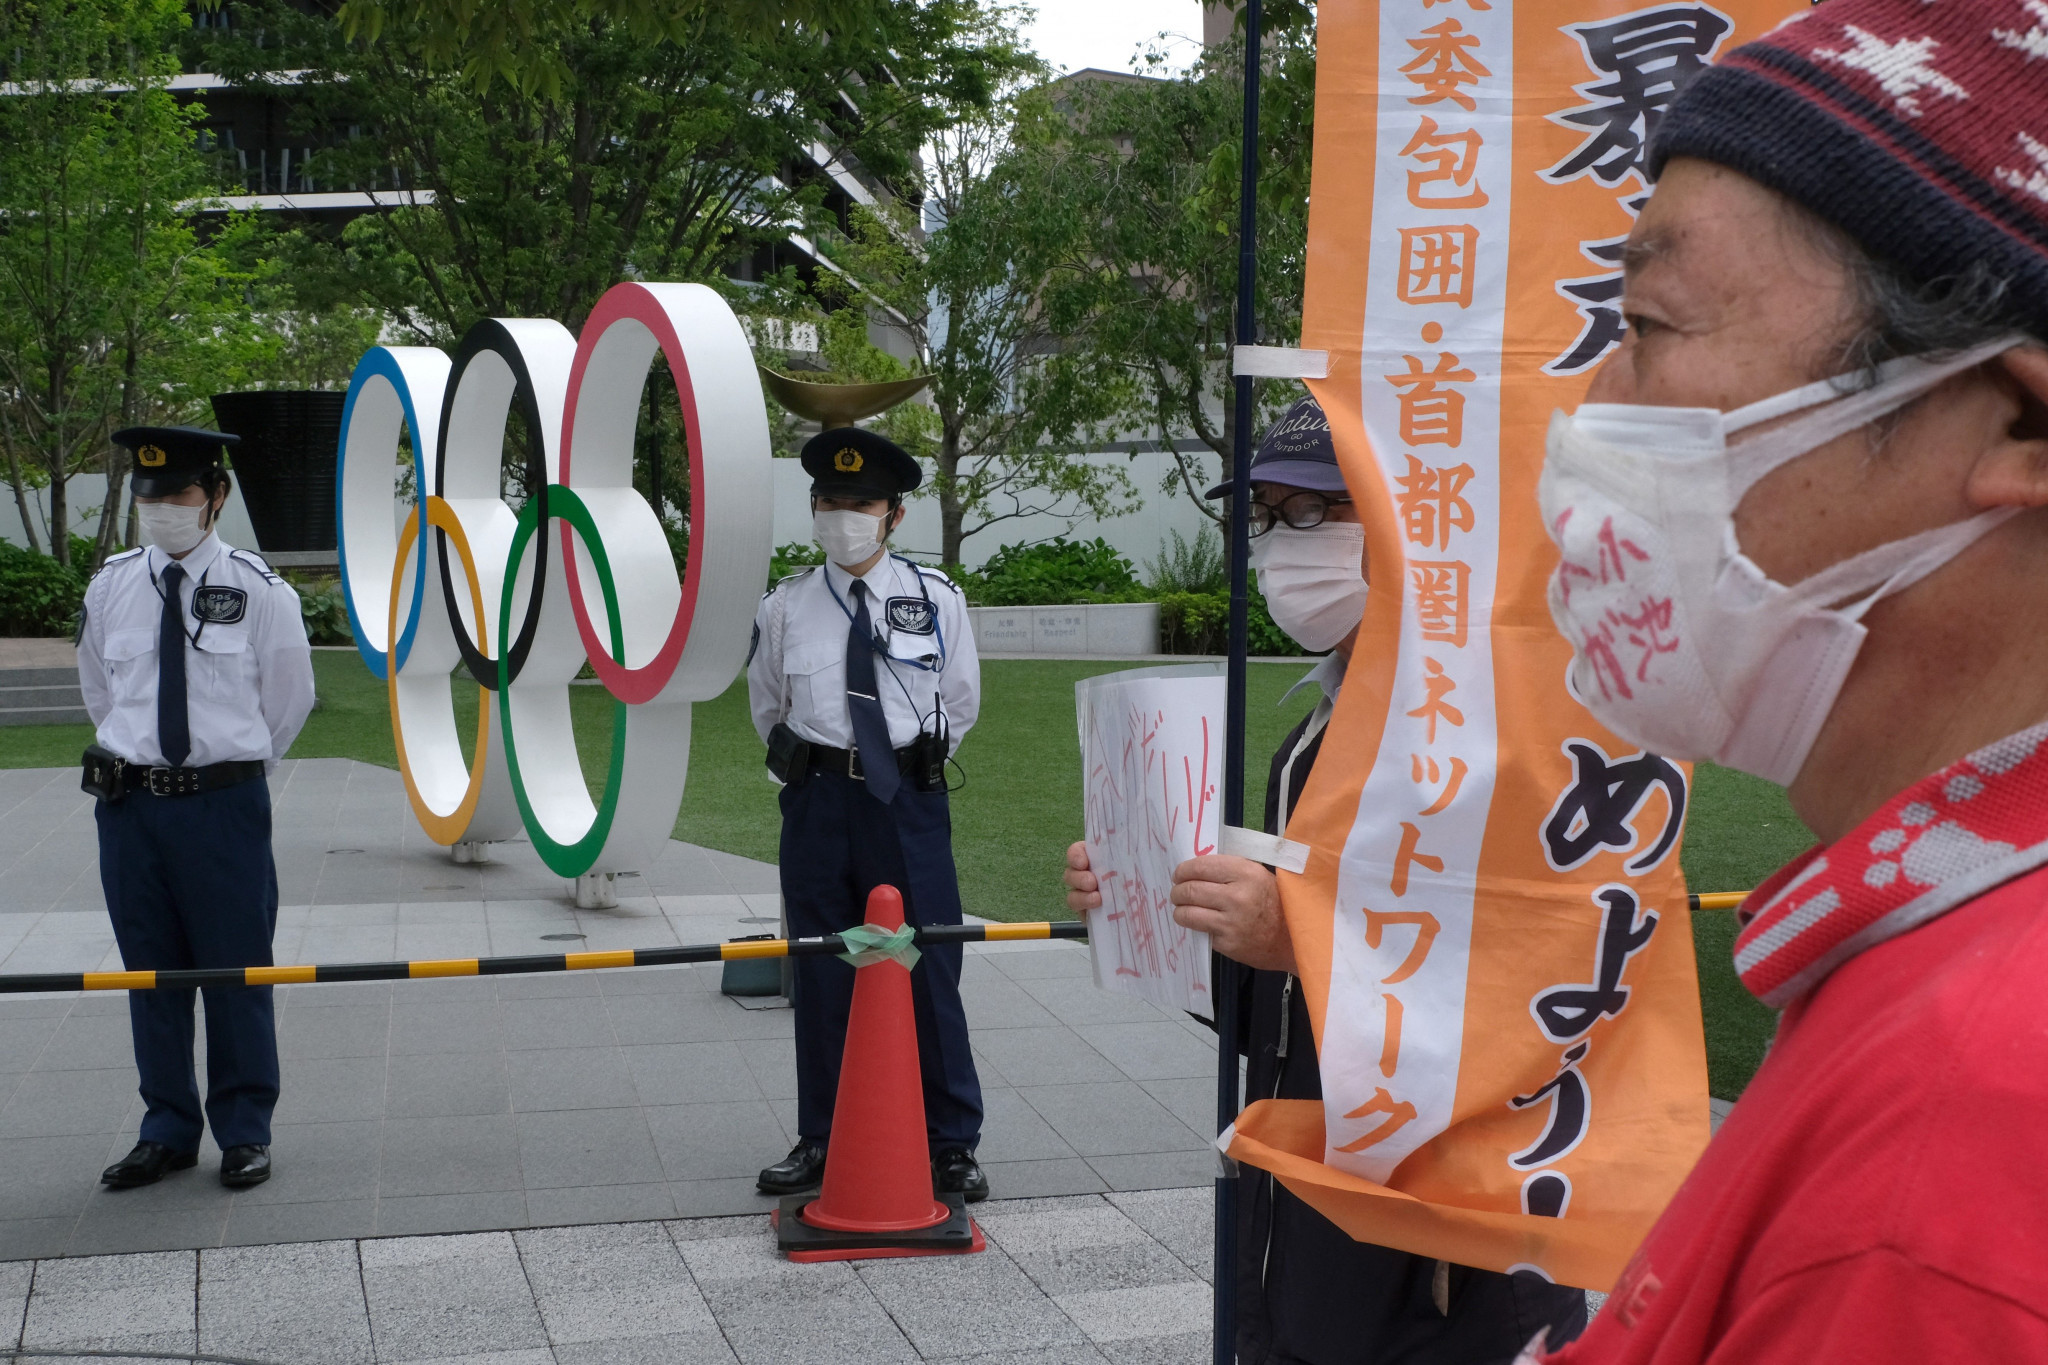 COVID-19 concerns have led to protests against the Tokyo 2020 Games taking place this year ©Getty Images